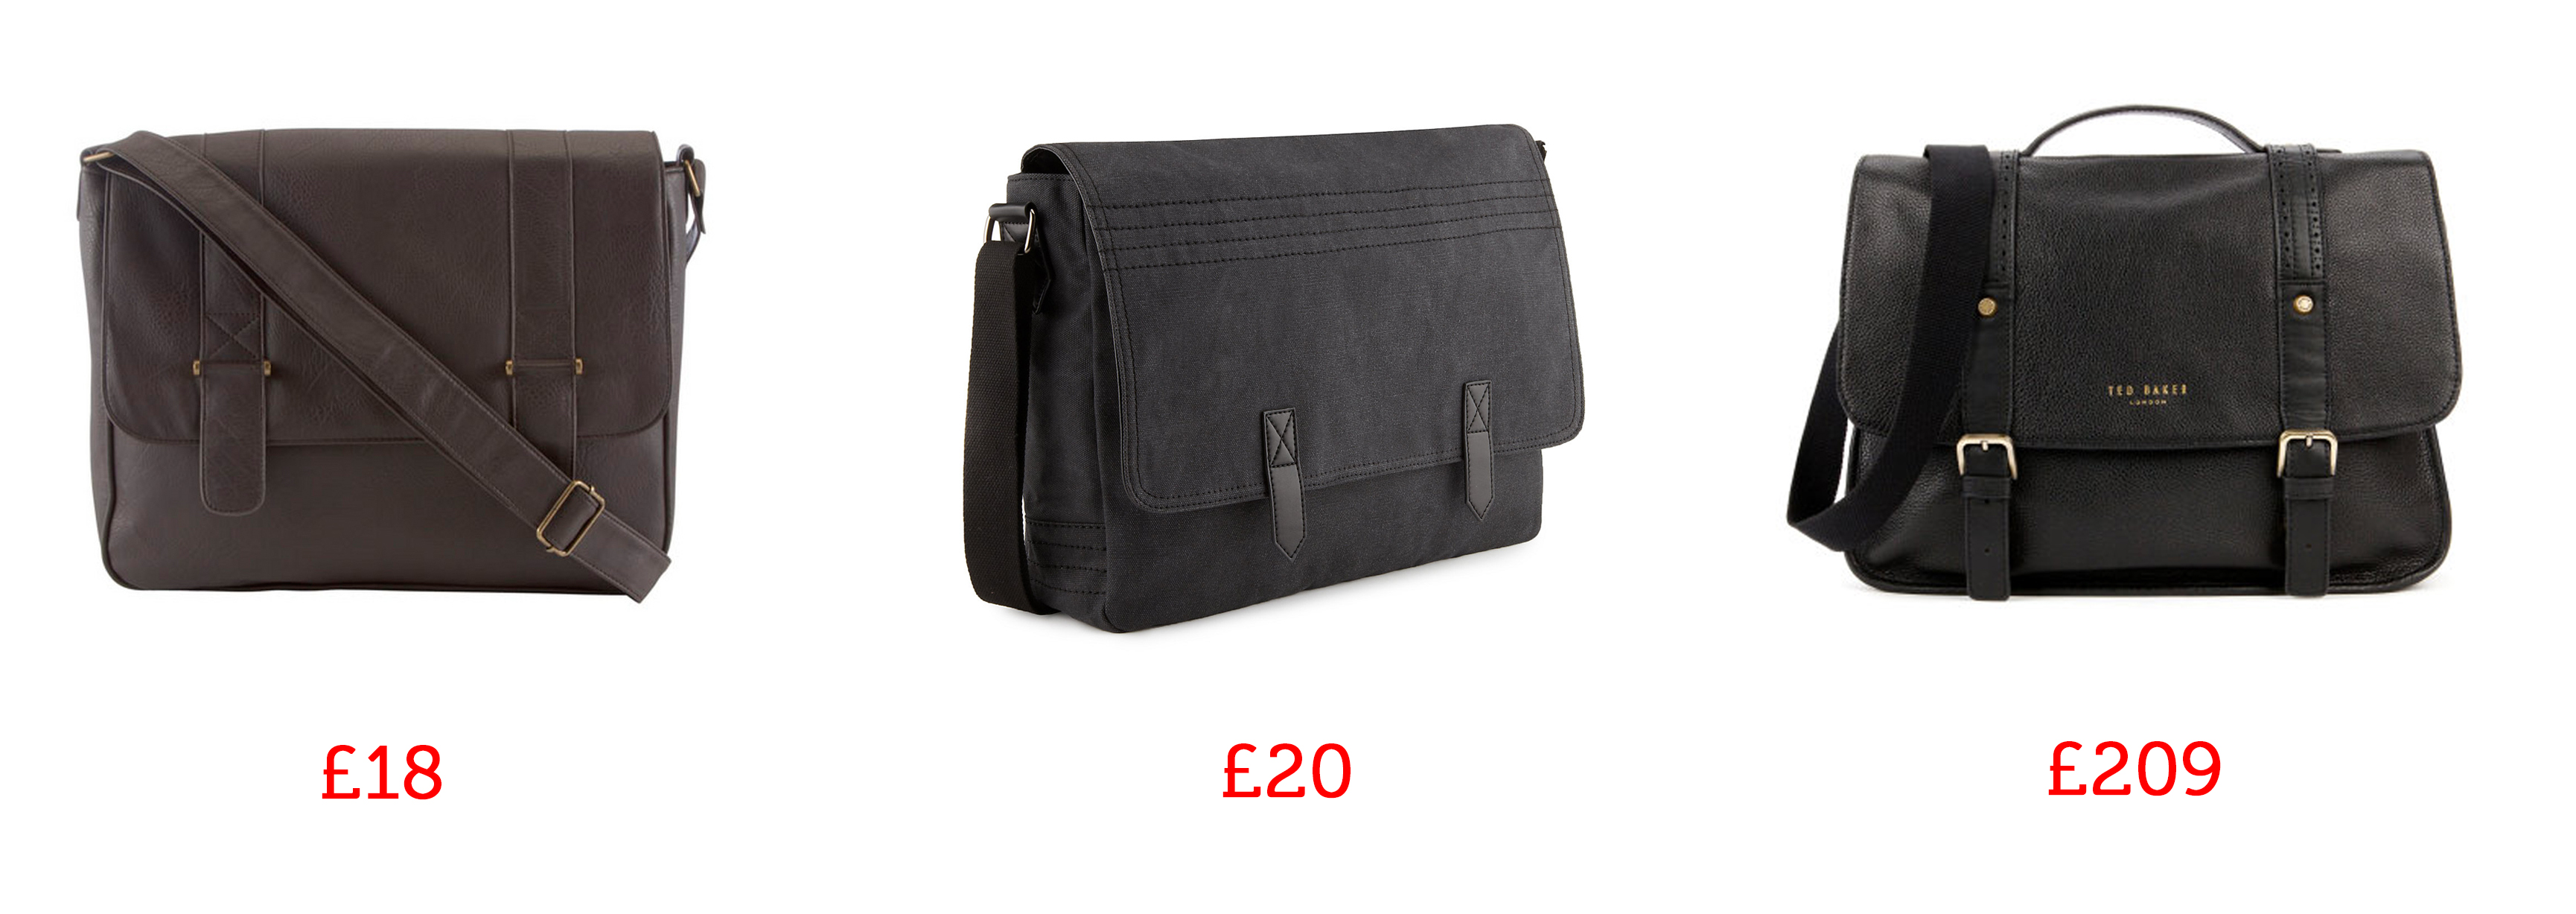 man bag messenger bags ted baker marks and spencers tesco